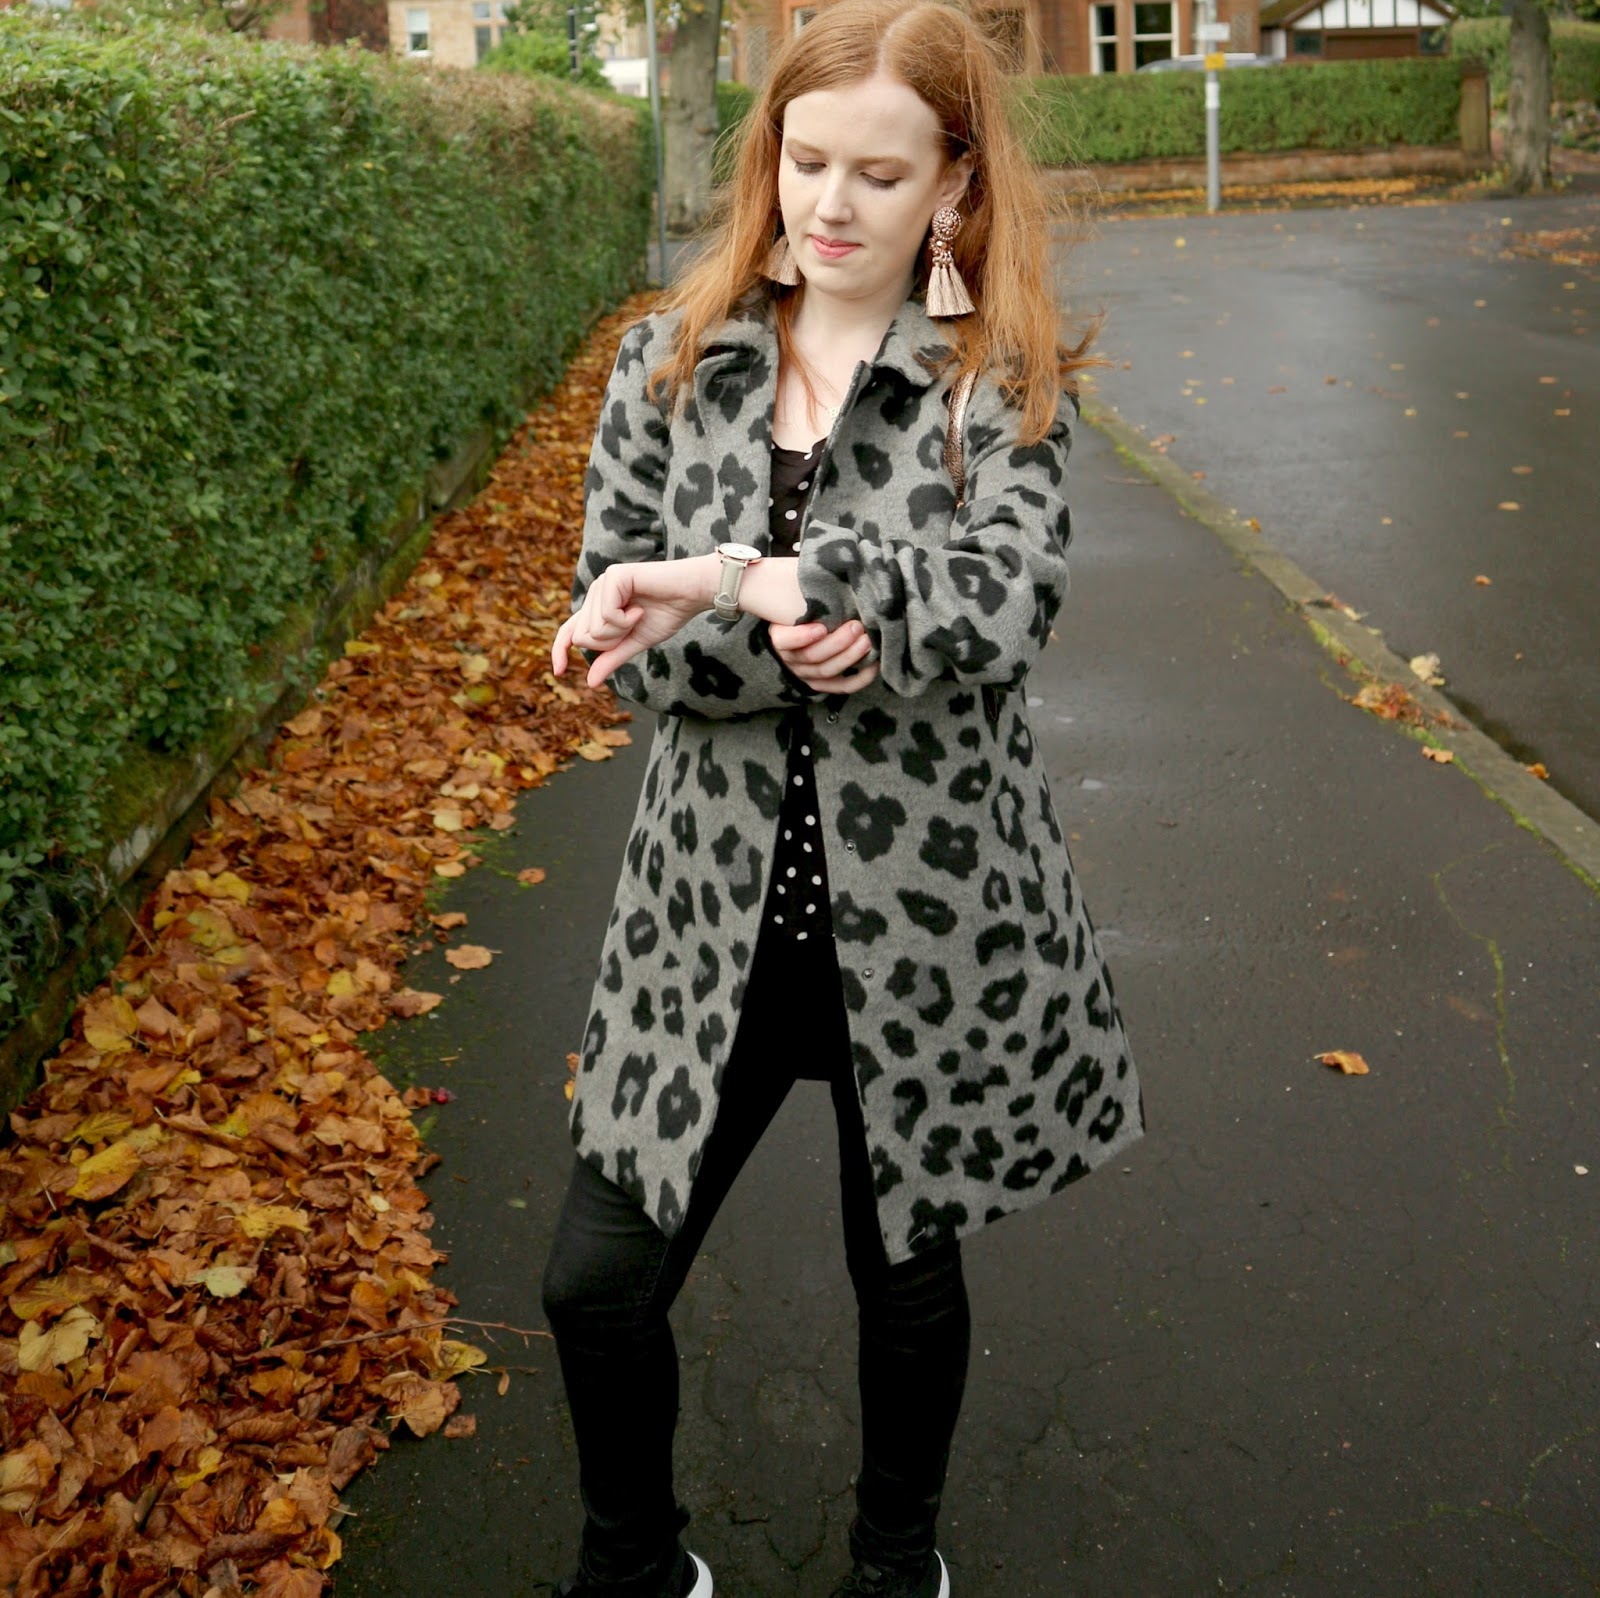 Glasgow fashion blogger